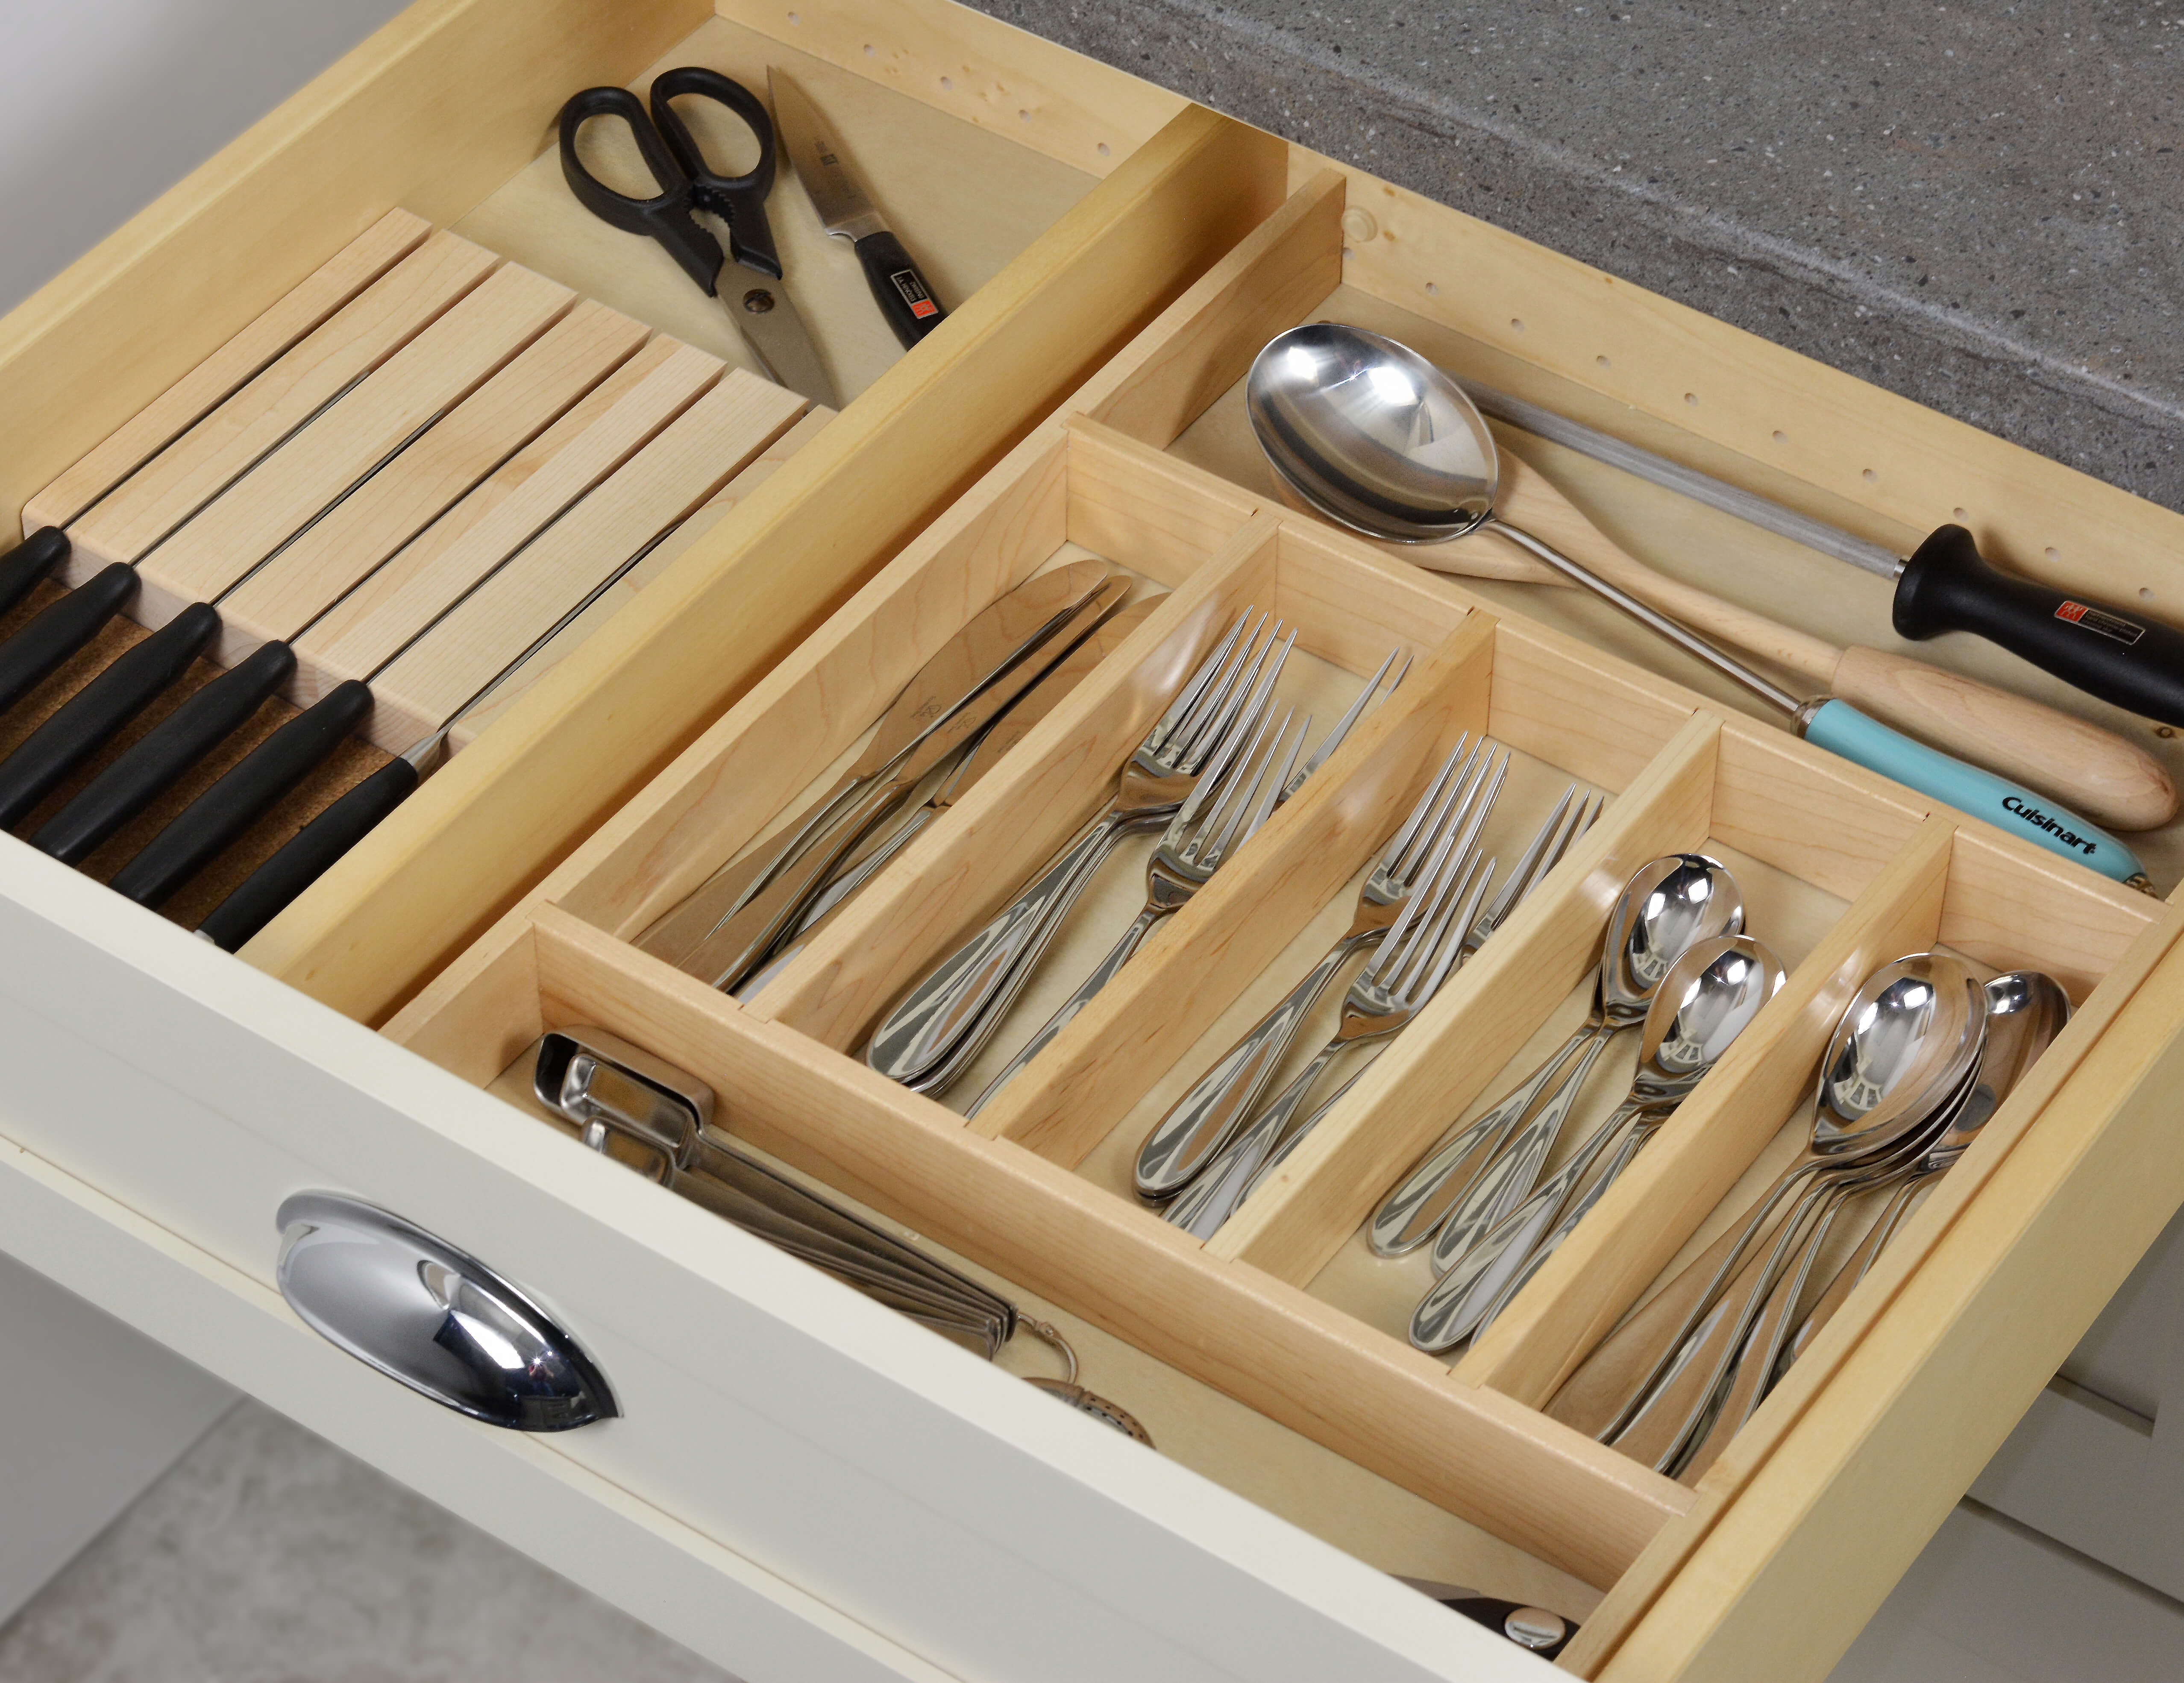 Cutlery Divider Tray + Knife Holder Combo